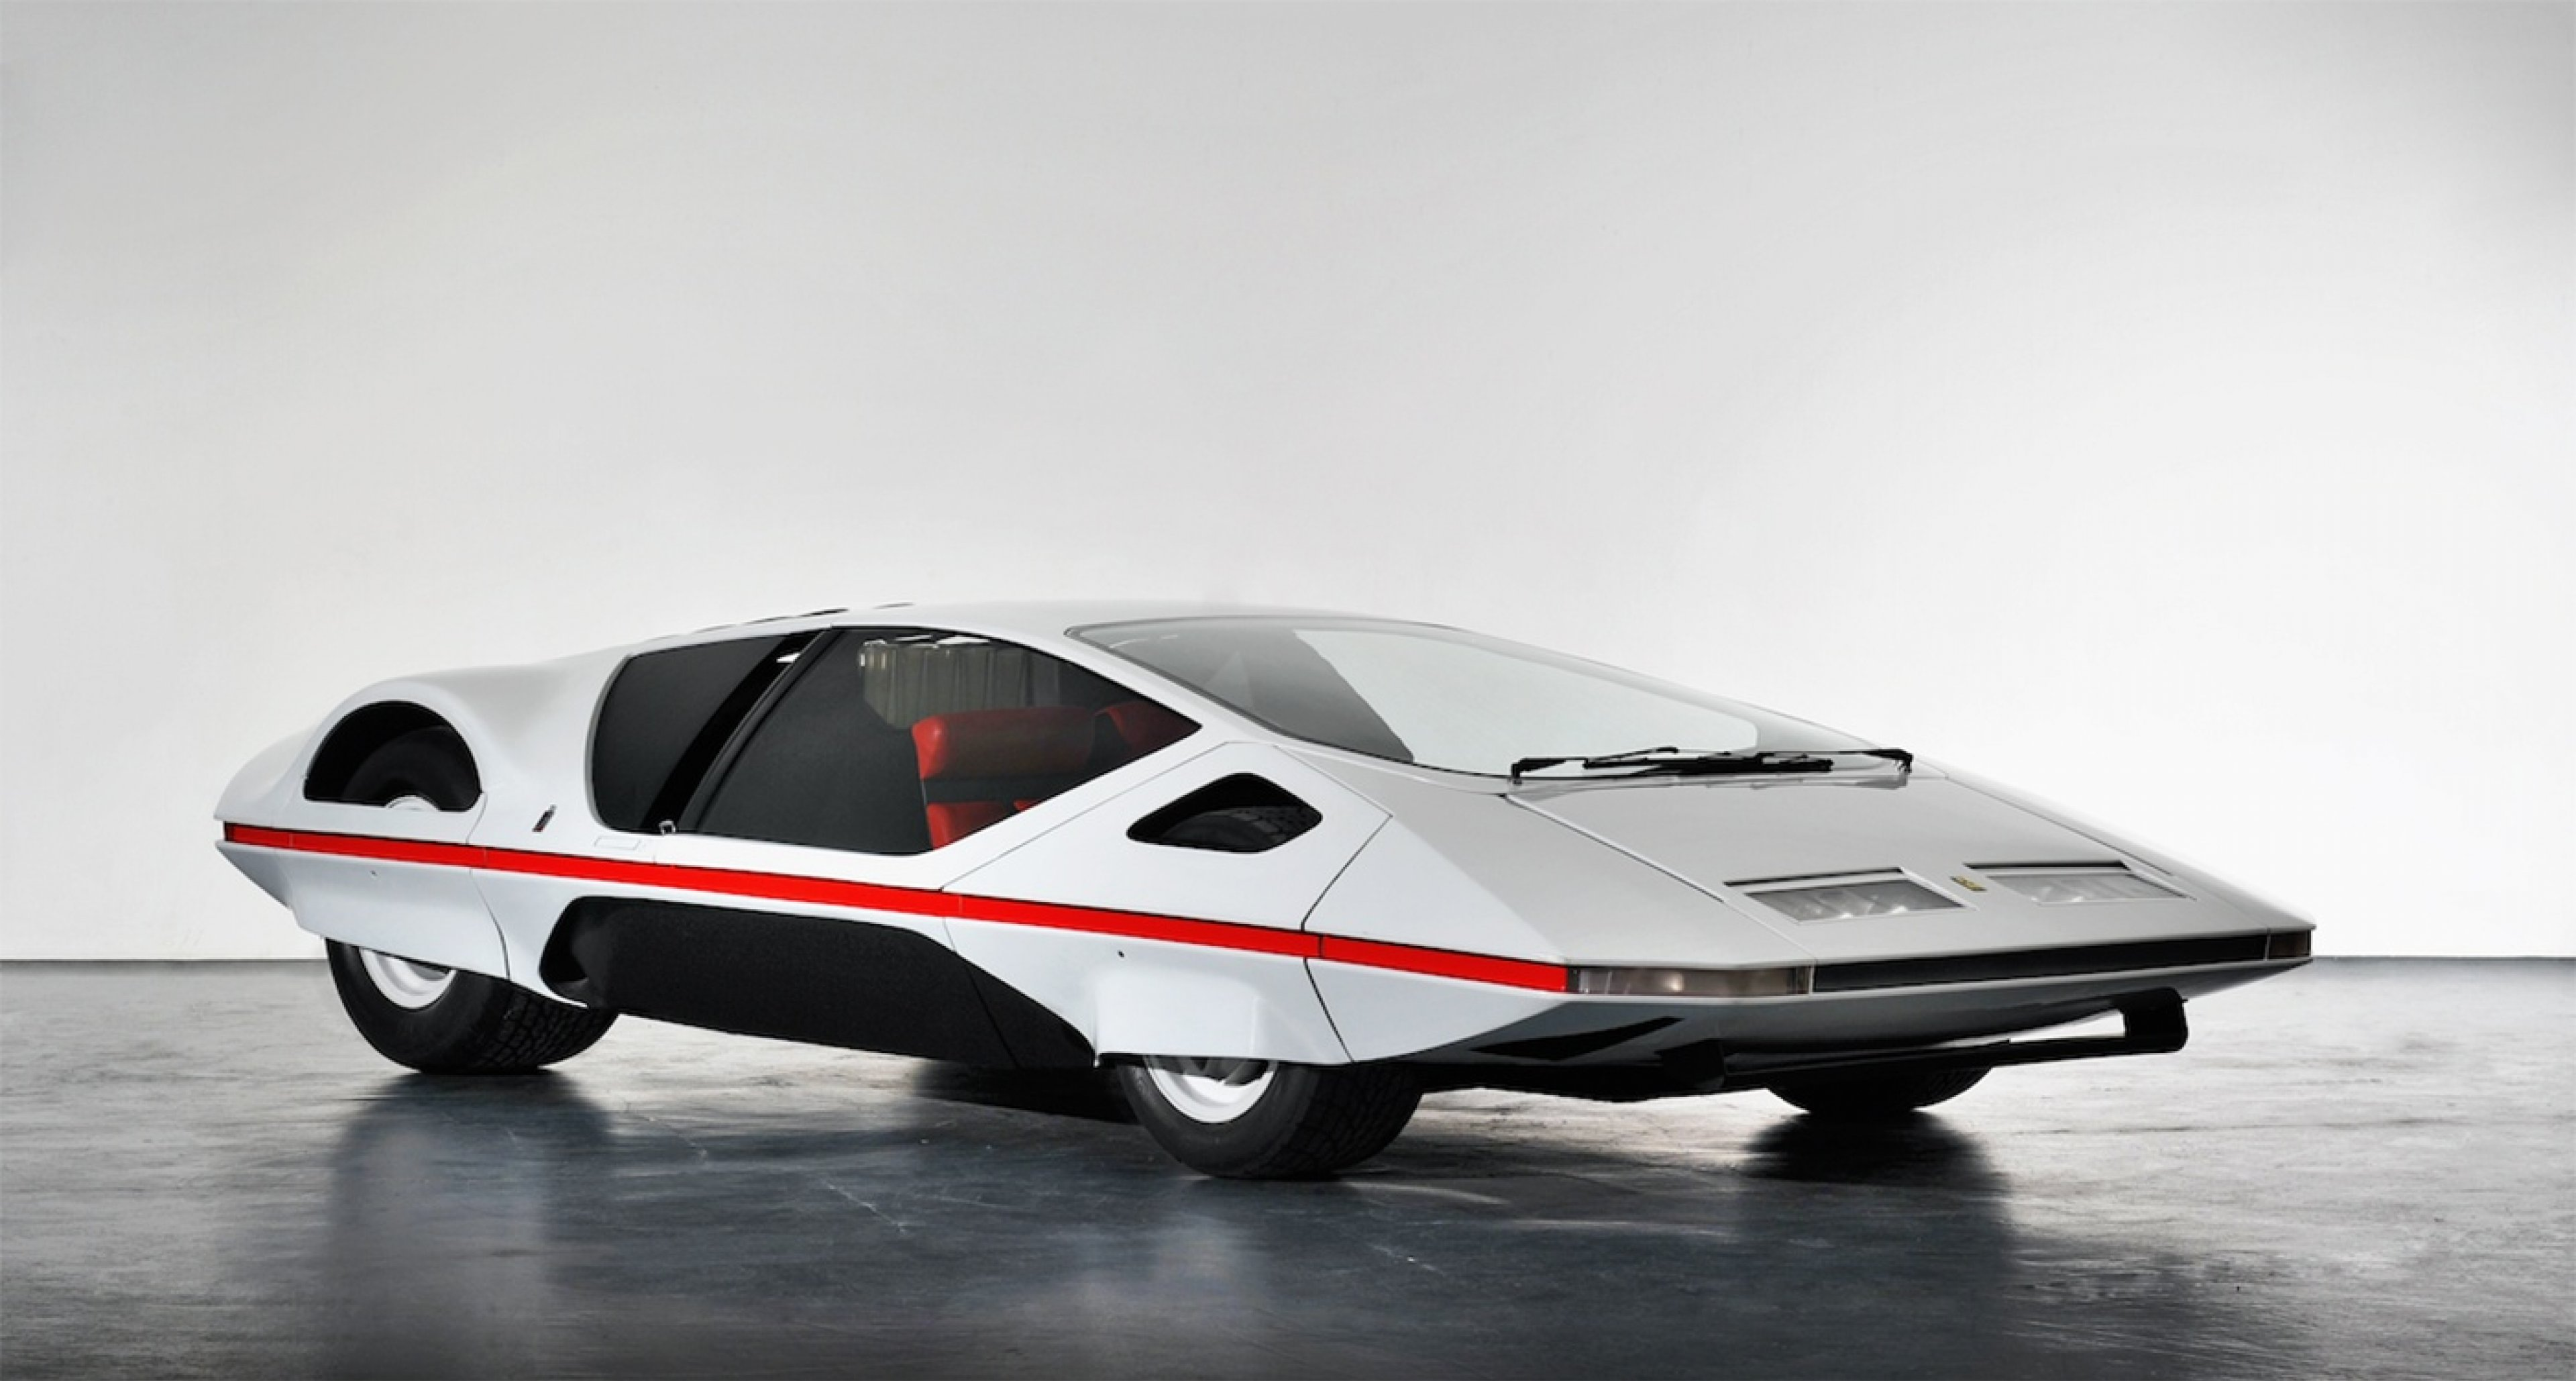 Ferrari Modulo. Photos from Pininfarina SpA.